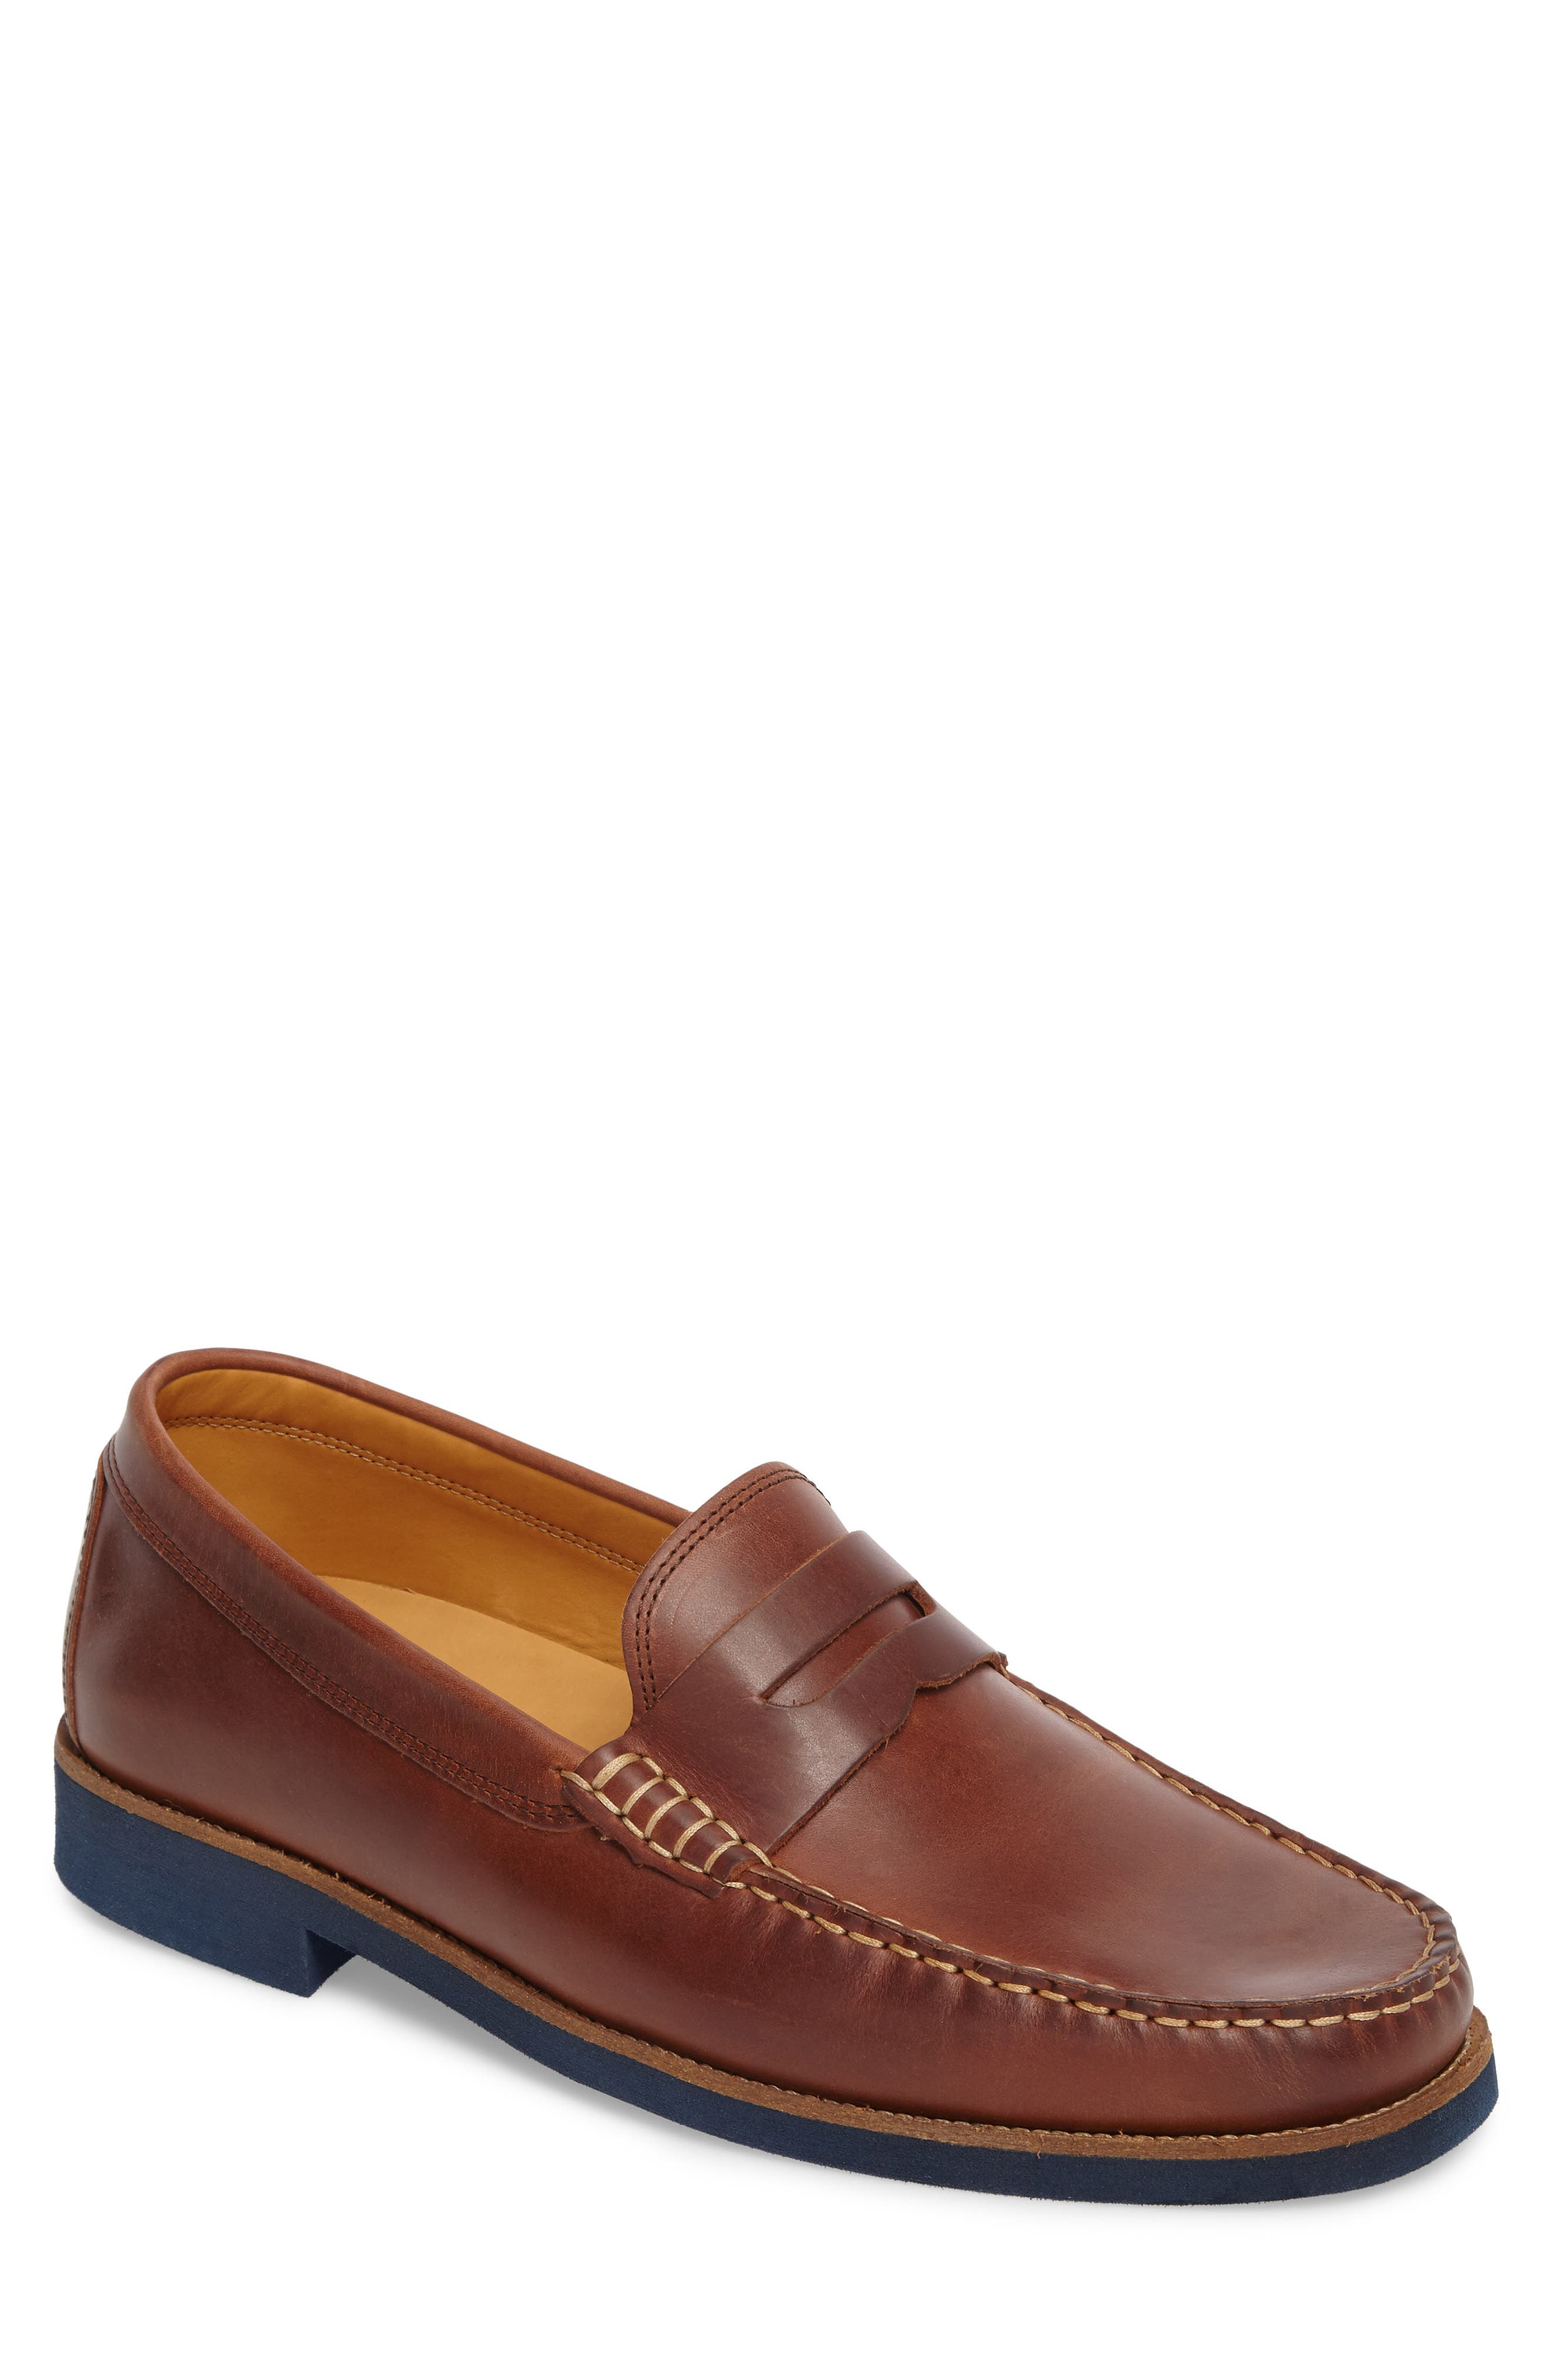 Lincolns Penny Loafer,                         Main,                         color, LIGHT BROWN